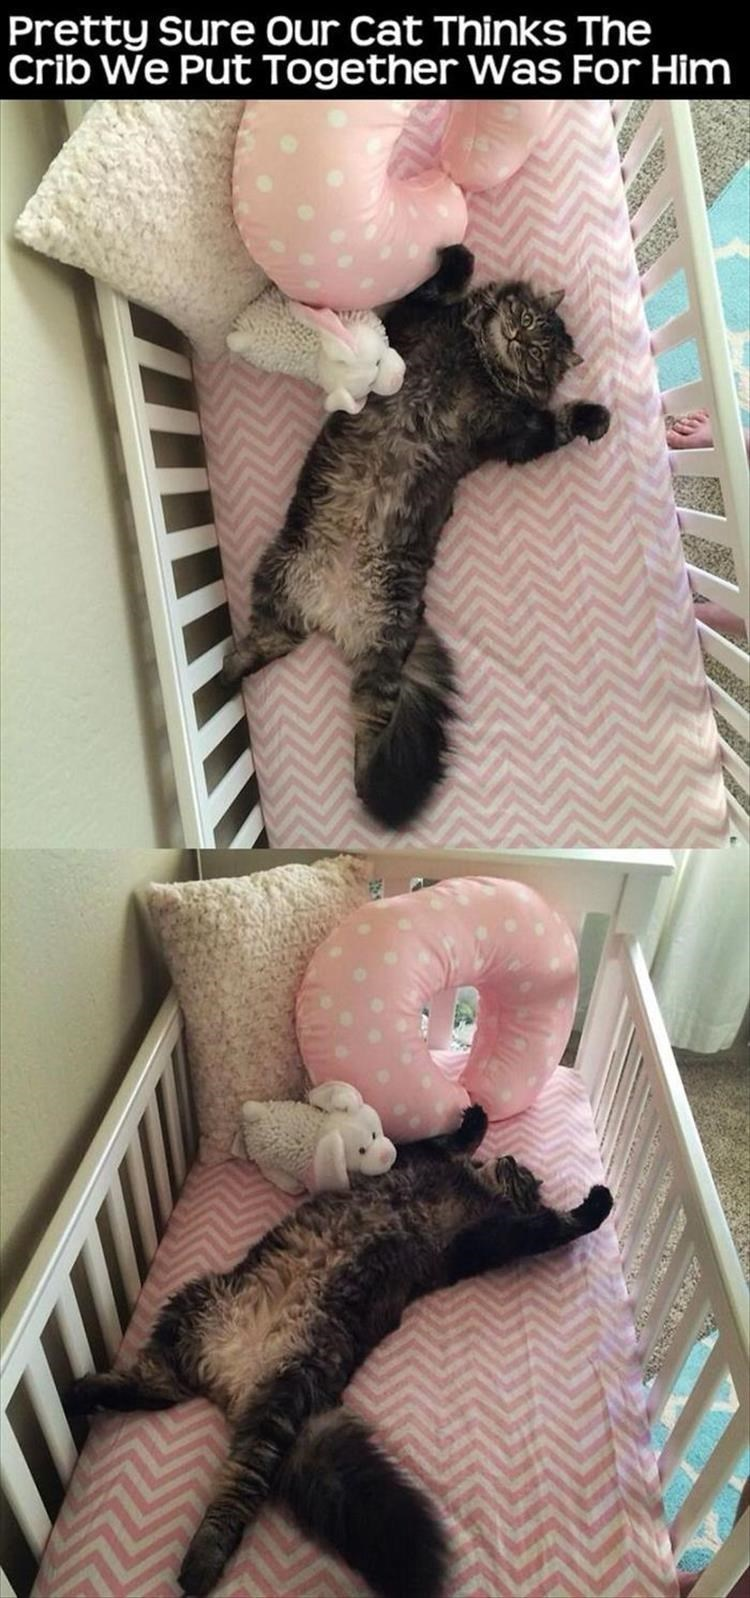 caturday - Pink - Pretty sure Our Cat Thinks The Crib We Put Together Was For Him